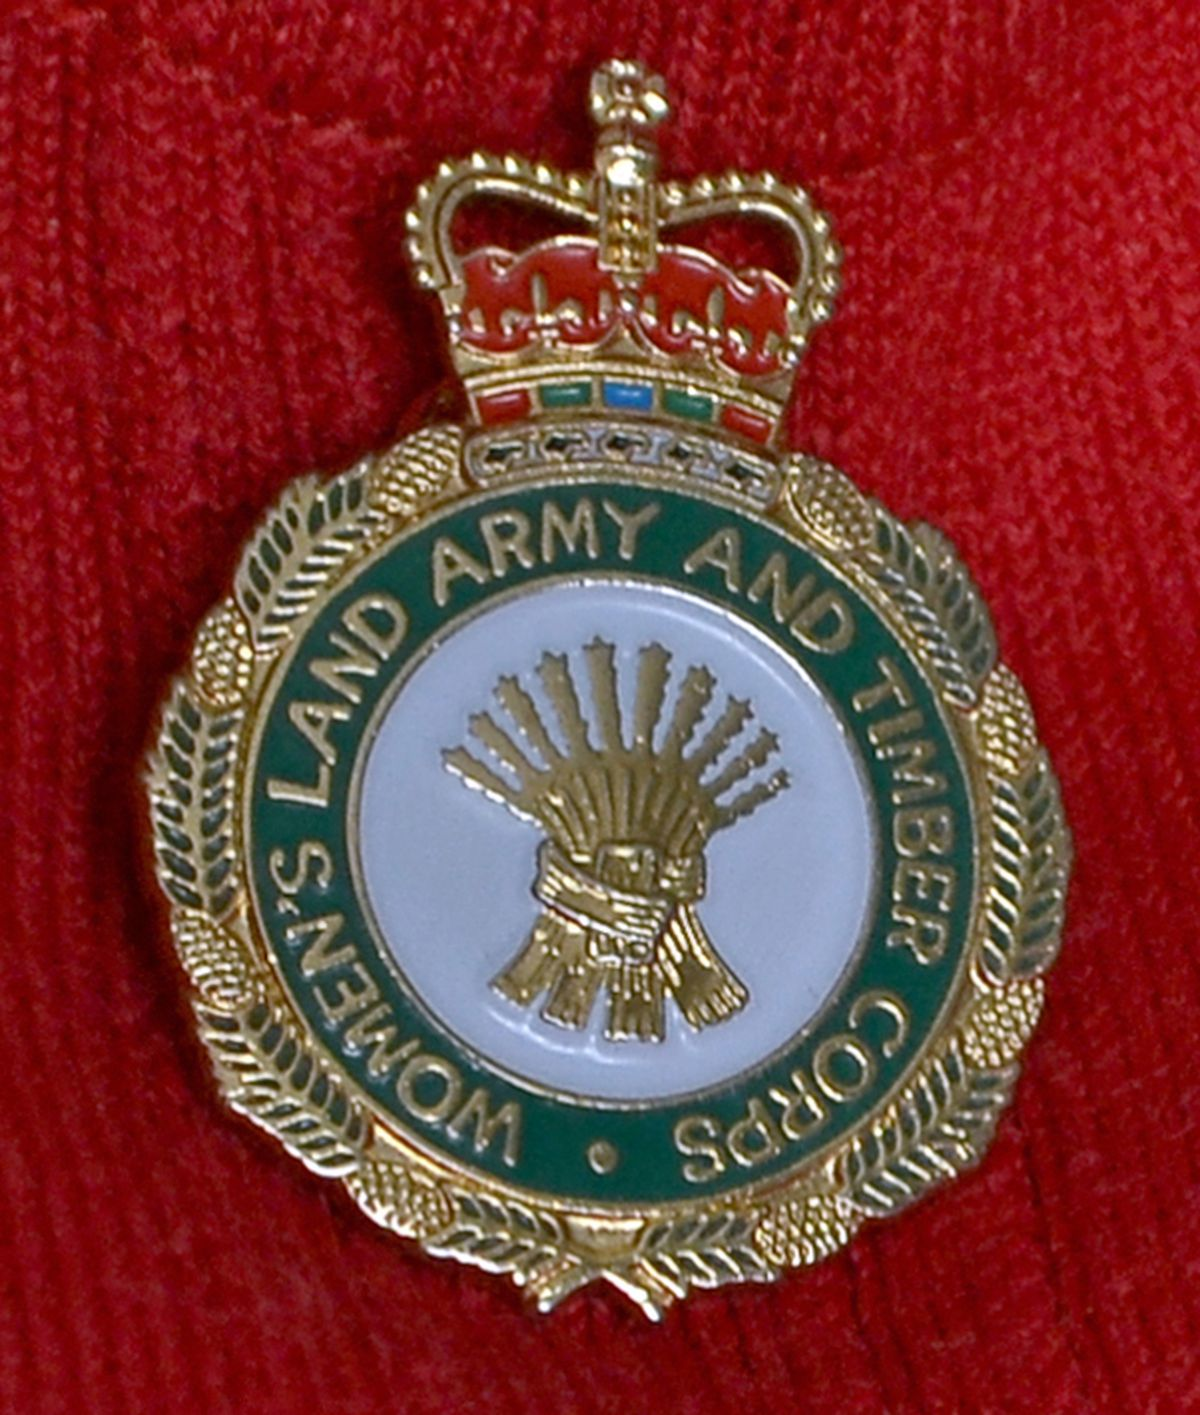 Mrs Jones still proudly wears her Land Army badge